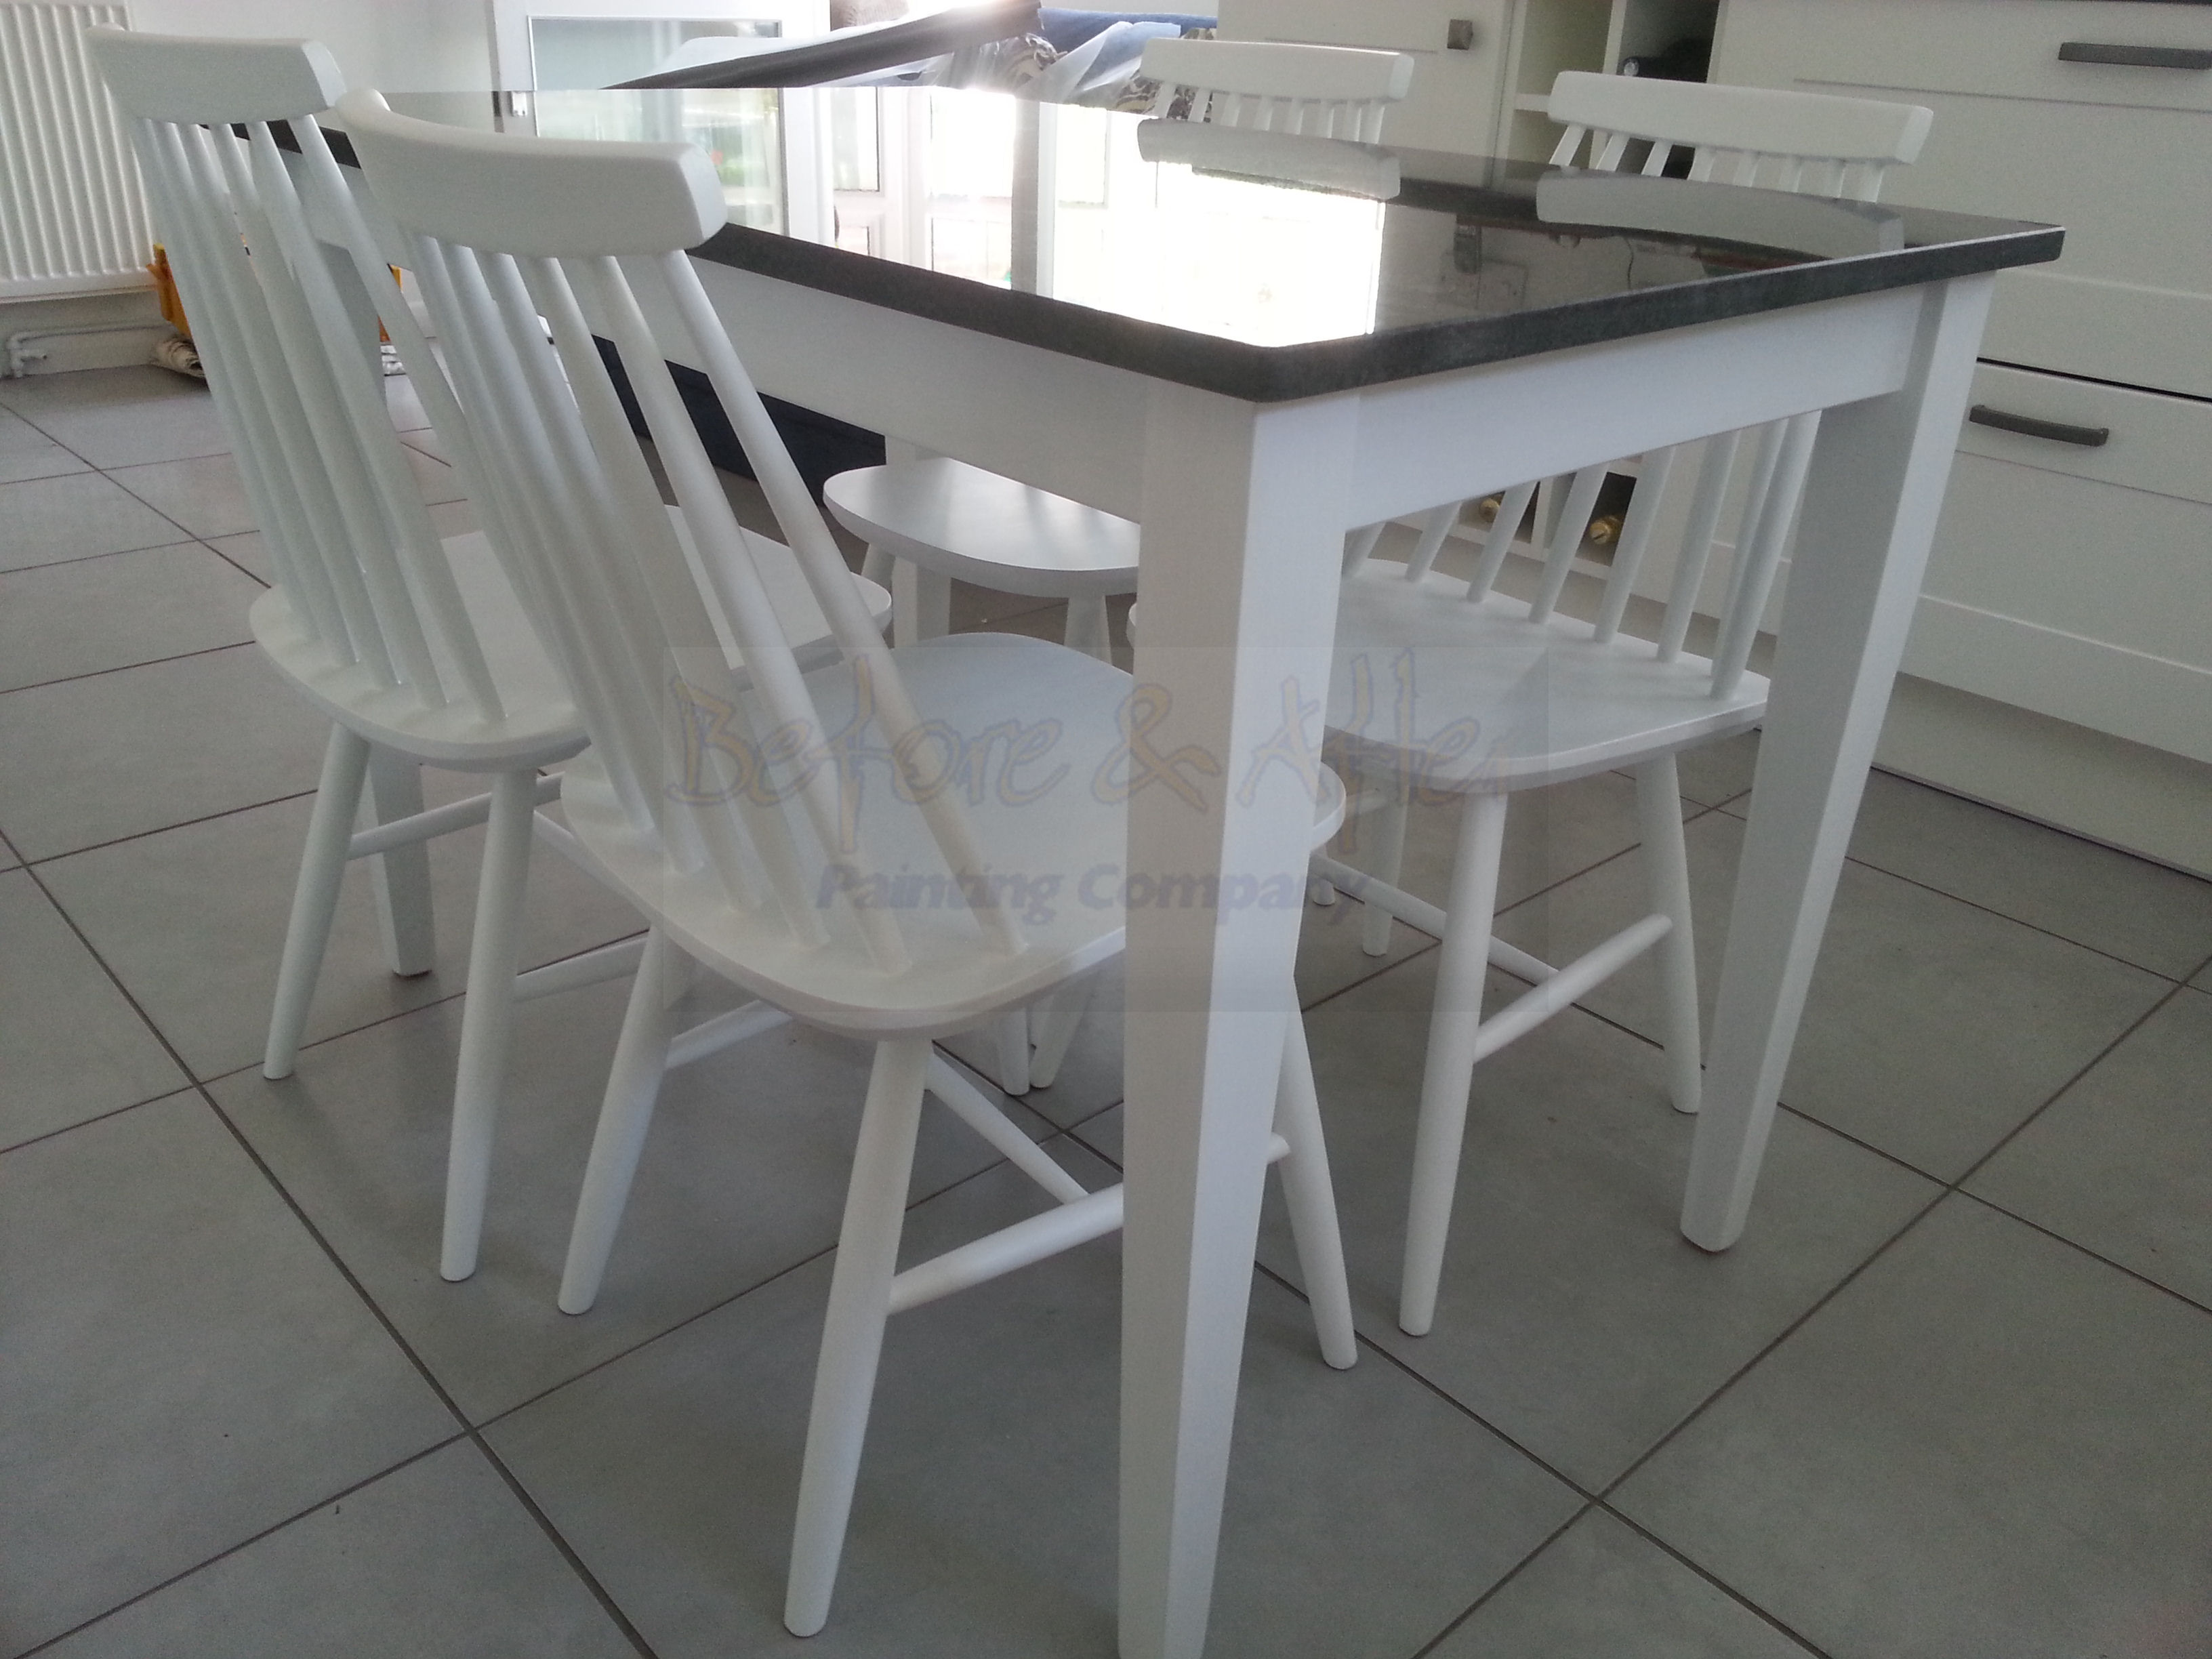 Hand painted kitchen furniture - using Mylands of London waterbased eggshell